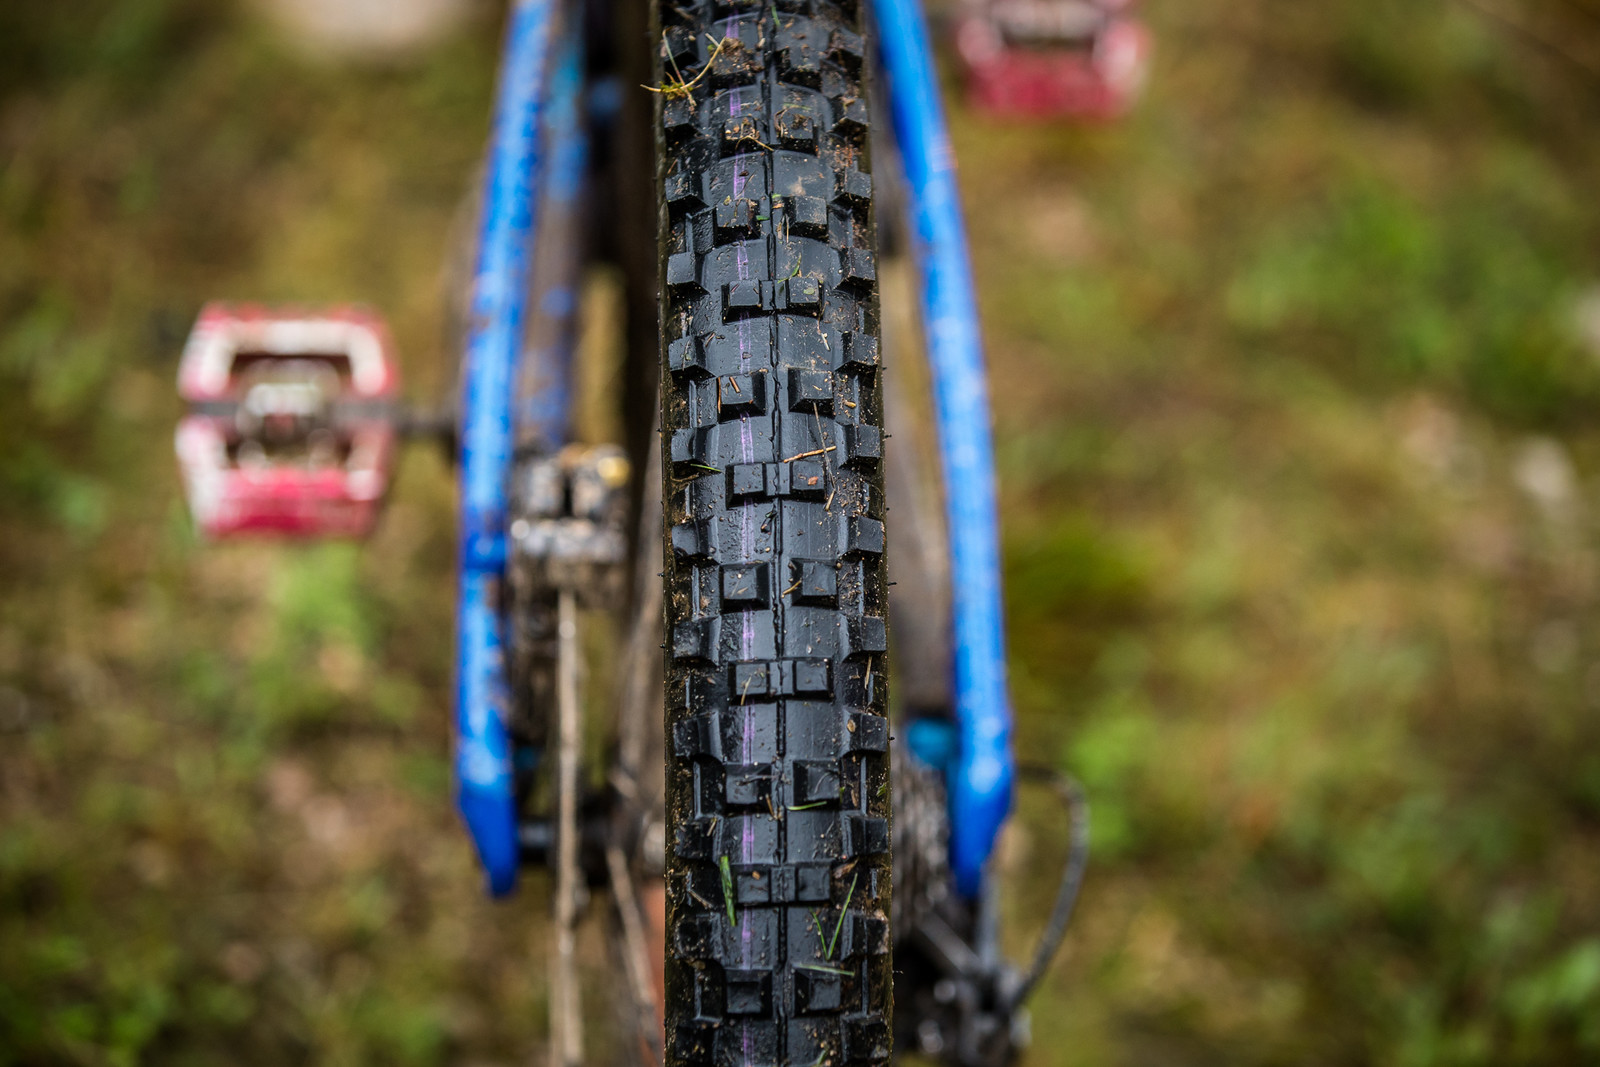 Cut Schwalbe Dirty Dan - WINNING BIKE - Martin Maes' GT Fury - Mountain Biking Pictures - Vital MTB